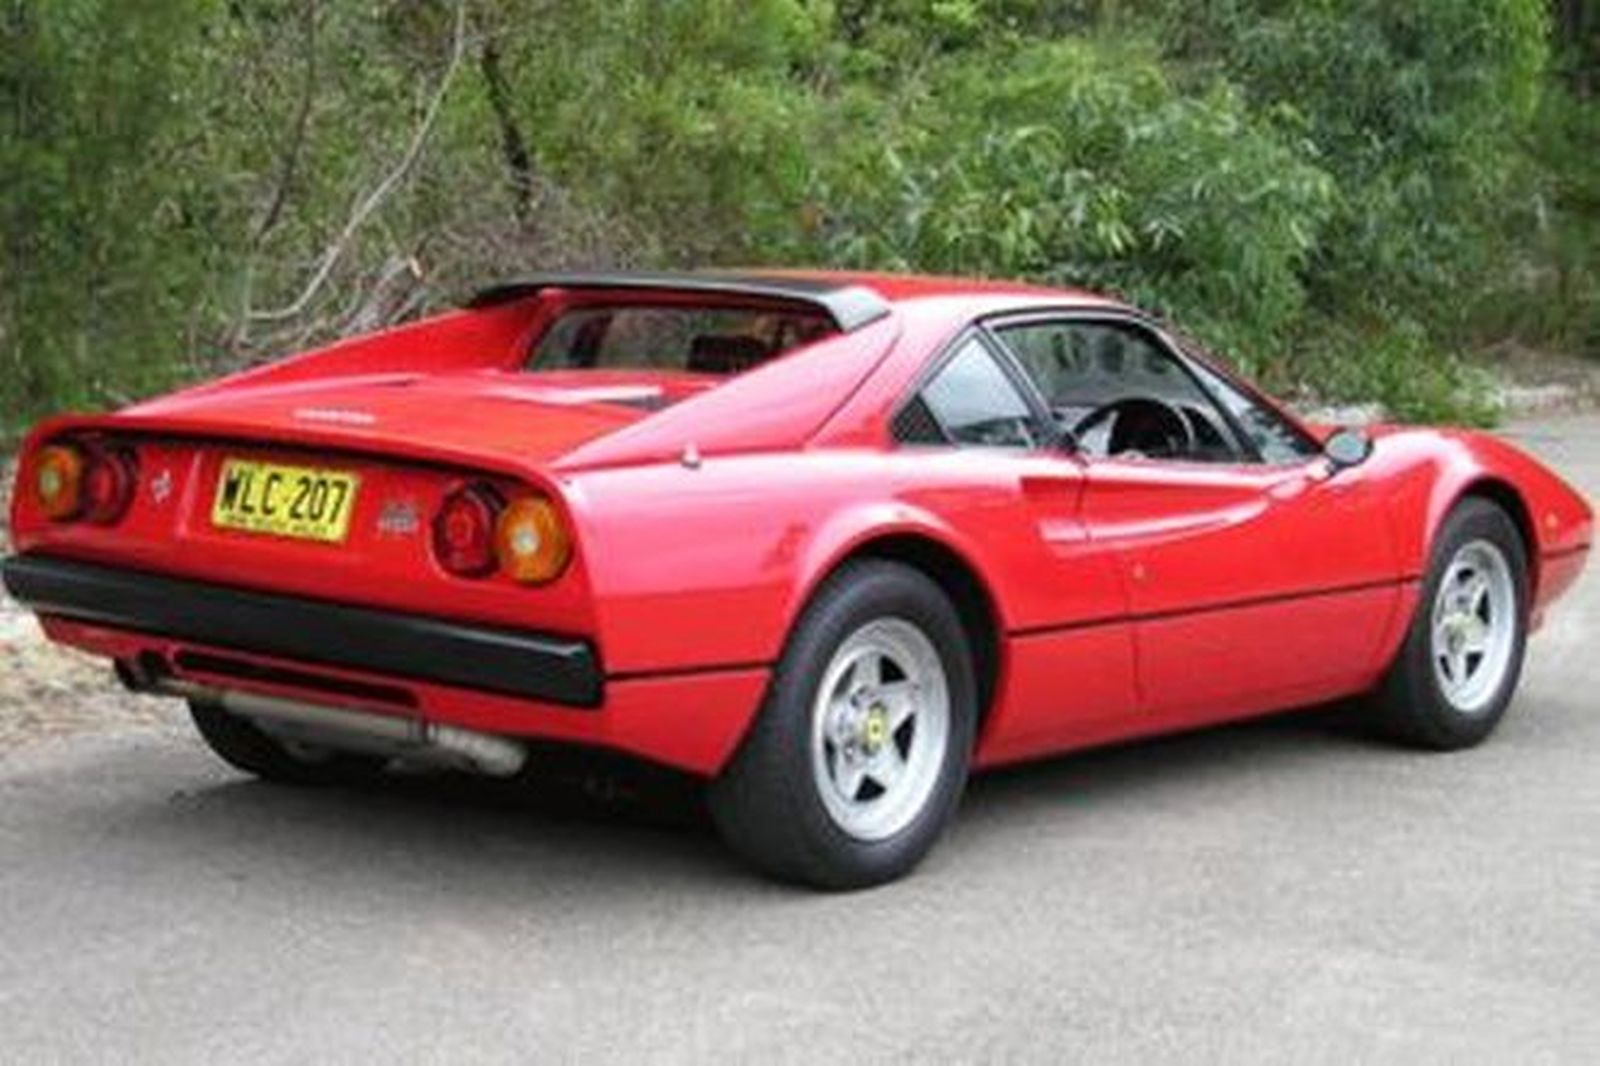 sold ferrari 308 gtb coupe auctions lot 17 shannons. Black Bedroom Furniture Sets. Home Design Ideas